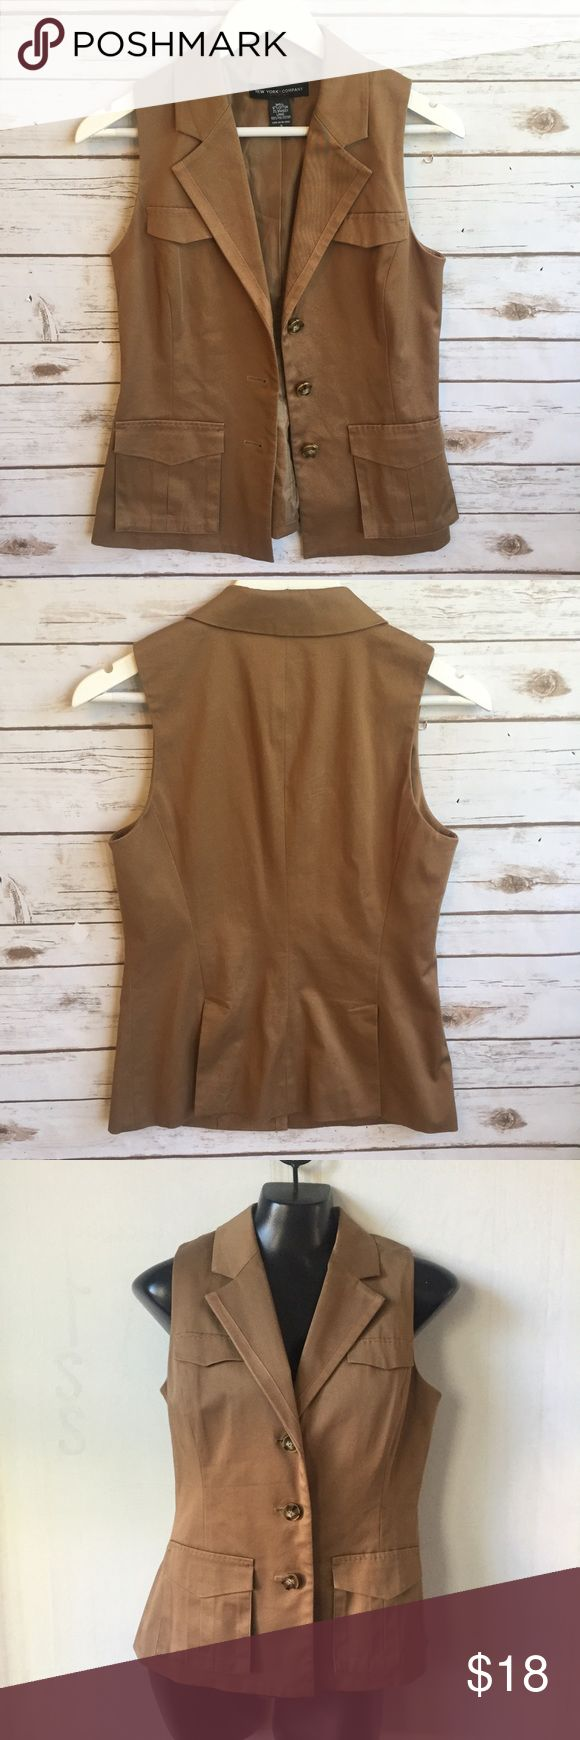 "NEW YORK & COMPANY  Structured Vest Nicely structured camel Vest Size 2 24"" long 17"" bust  Thank you for looking and please check out the rest of my closet. New York & Company Jackets & Coats Vests"